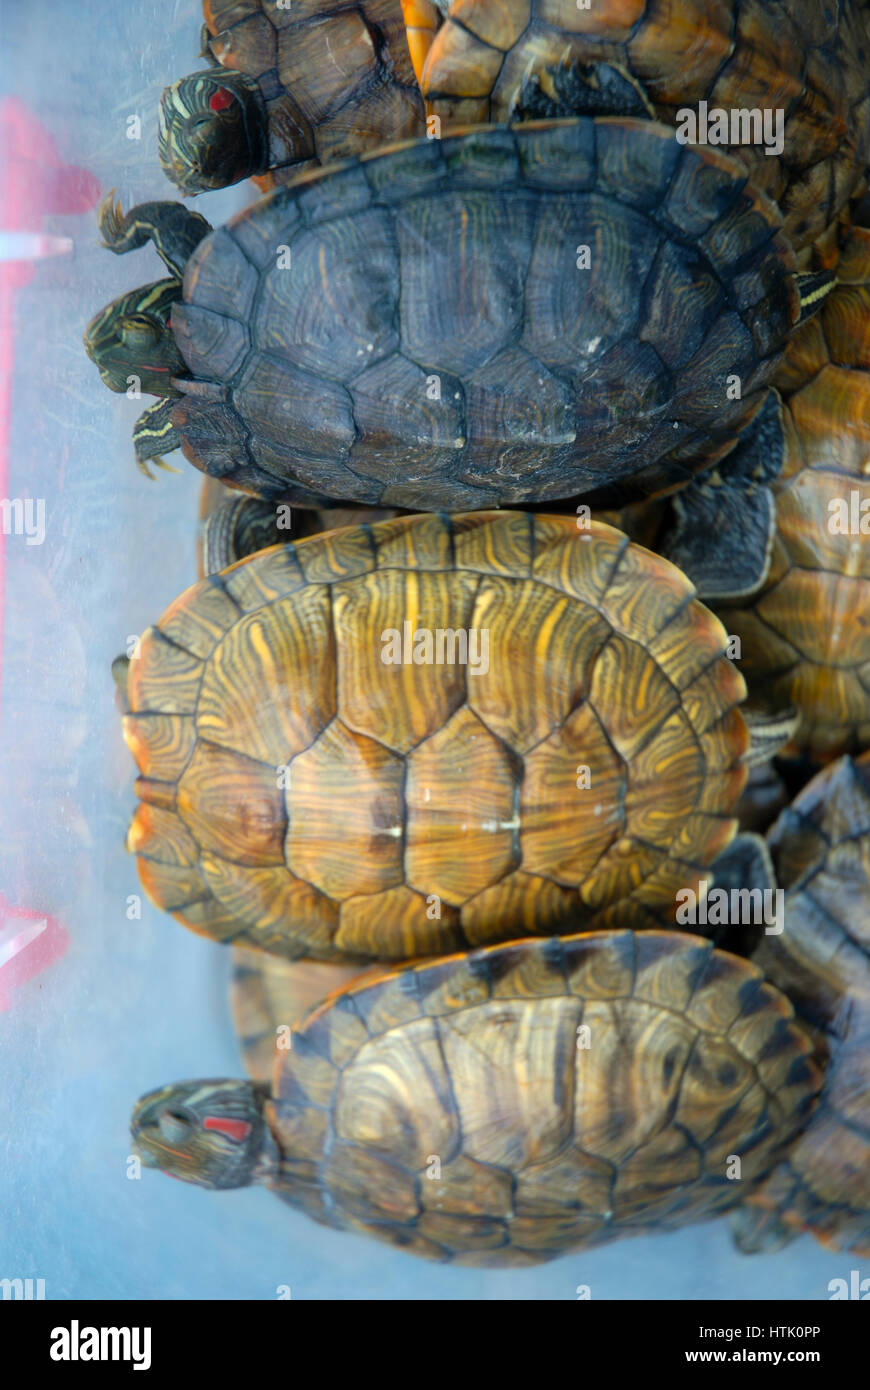 Turtles For Sale High Resolution Stock Photography And Images Alamy